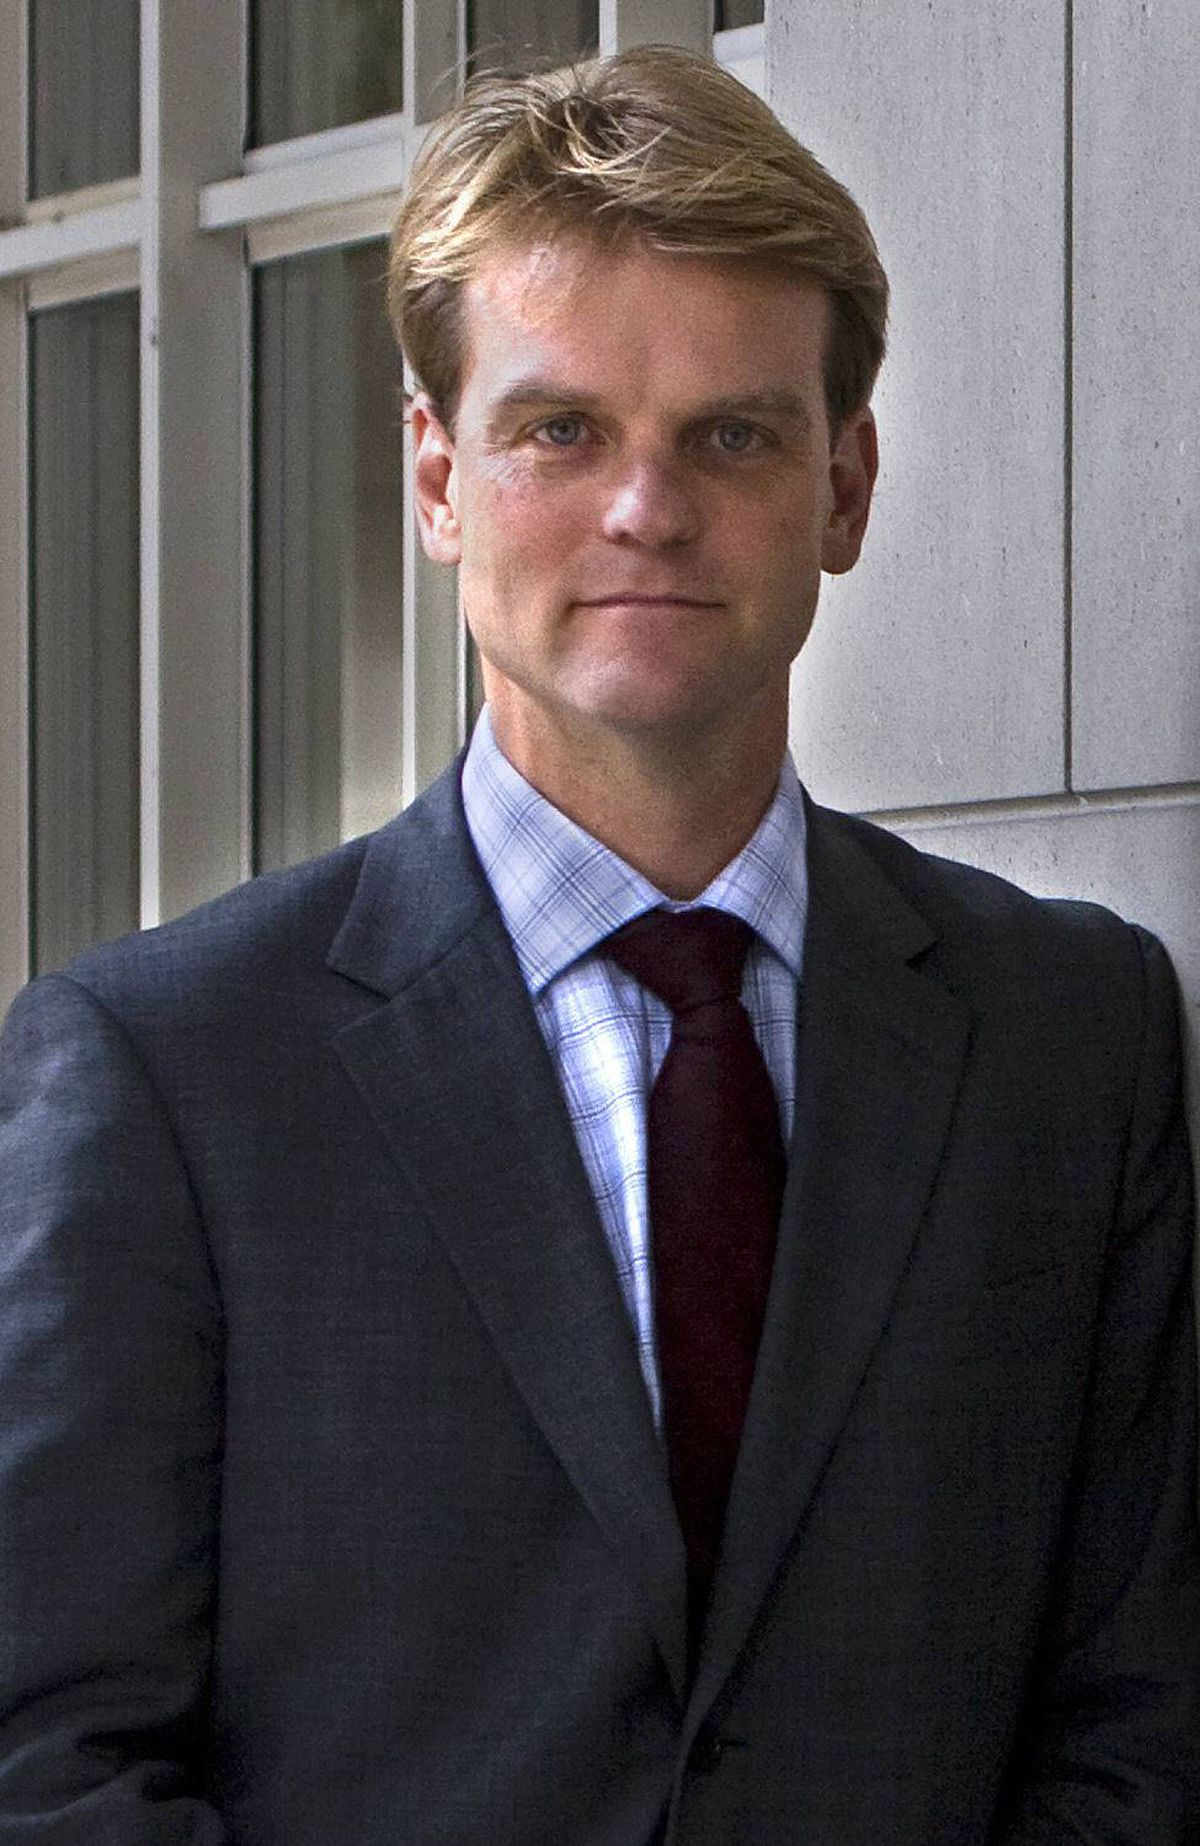 Toronto: September 16, 2009 - Chris Alexander, who has served as the Deputy Special Representative to the Secretary General in Afghanistan, is making a speech at the Empire Club on the subject of Afghanistan.